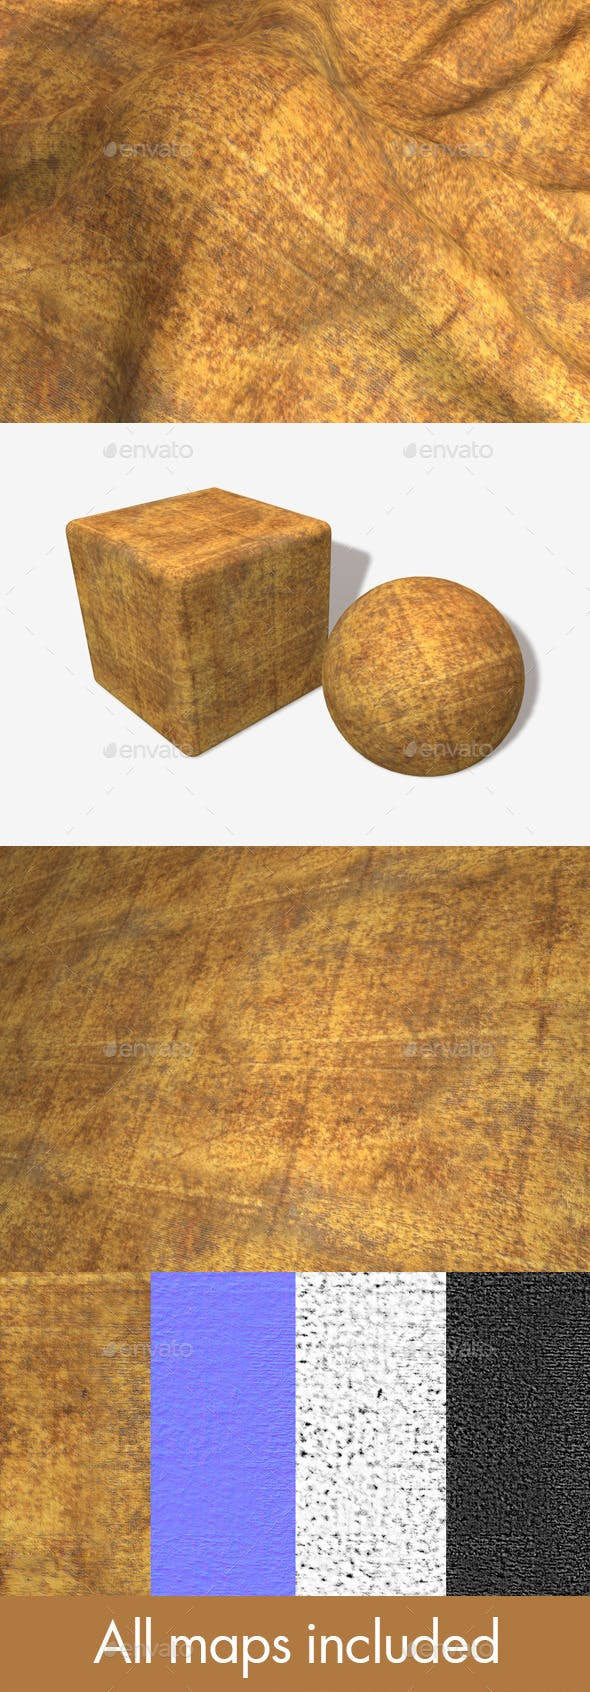 Dirty Tent Fabric Seamless Texture - 3DOcean Item for Sale